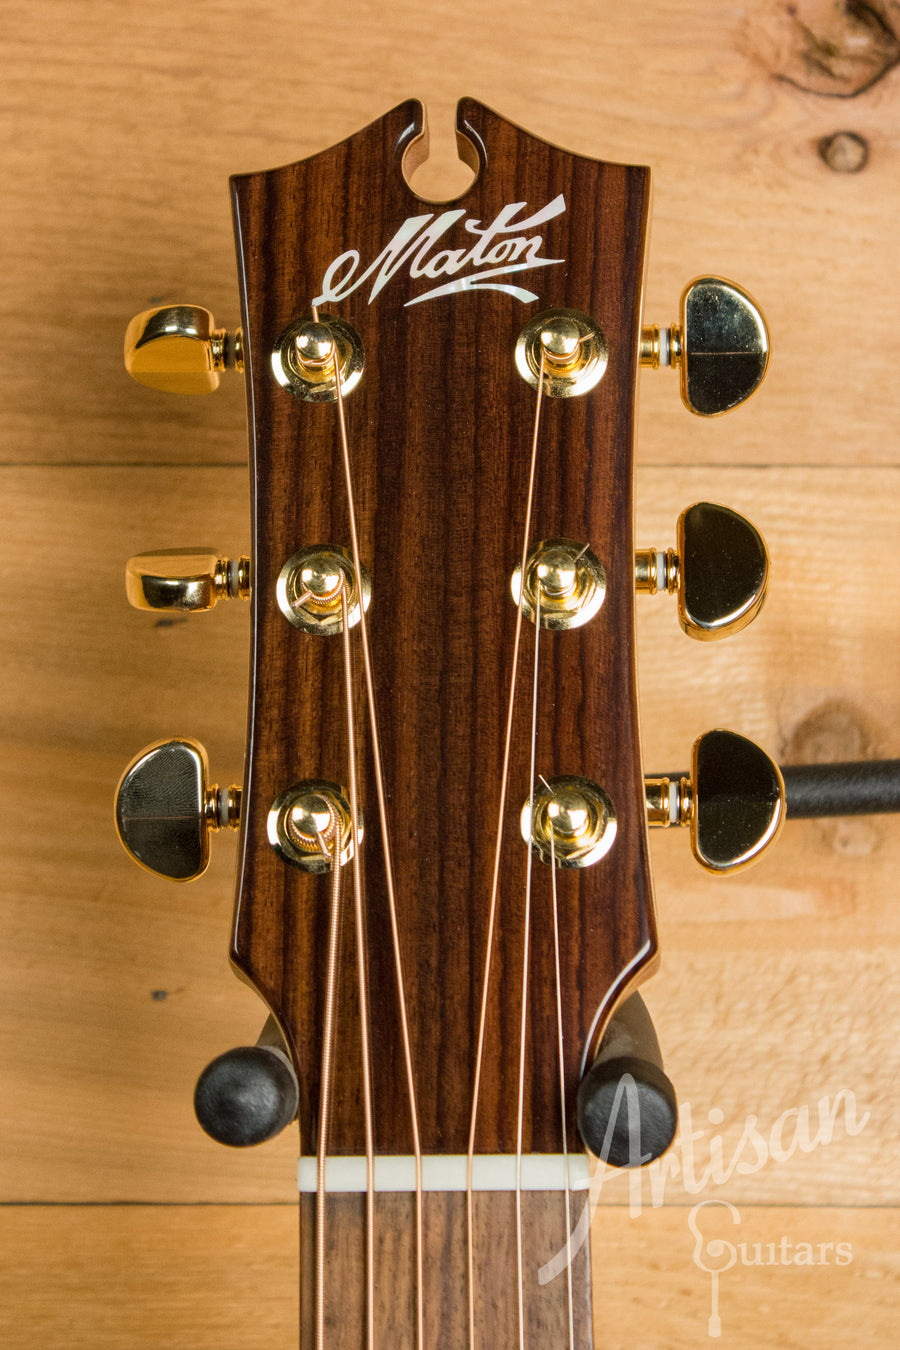 Maton 70th Anniversary Dreadnought Cutaway Sitka Spruce and Blackwood ID-11119 - Artisan Guitars